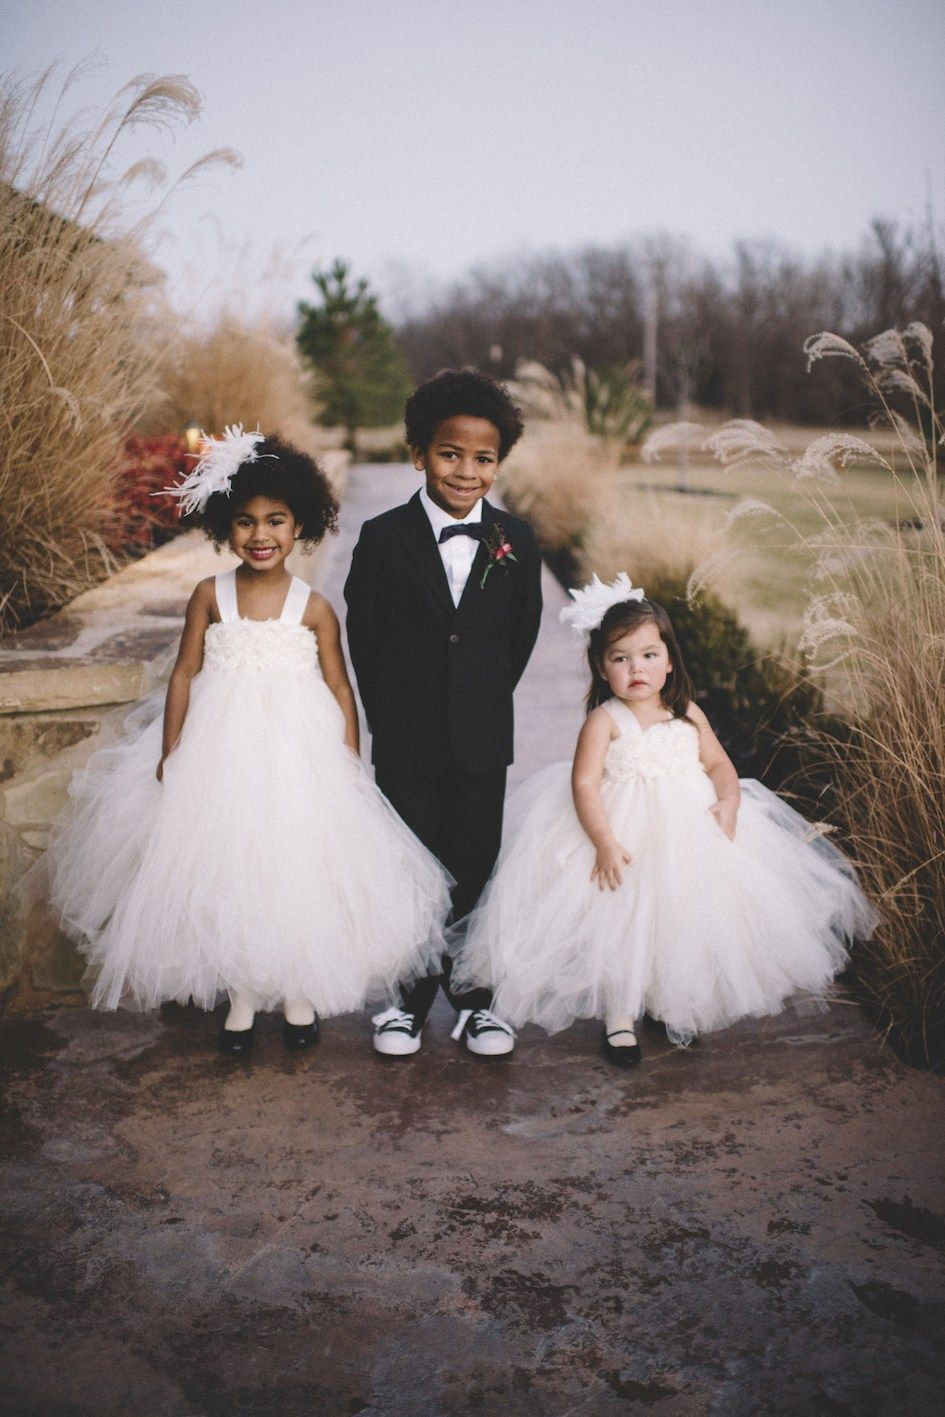 The most darling flower girls and ring bearer for a classy winter